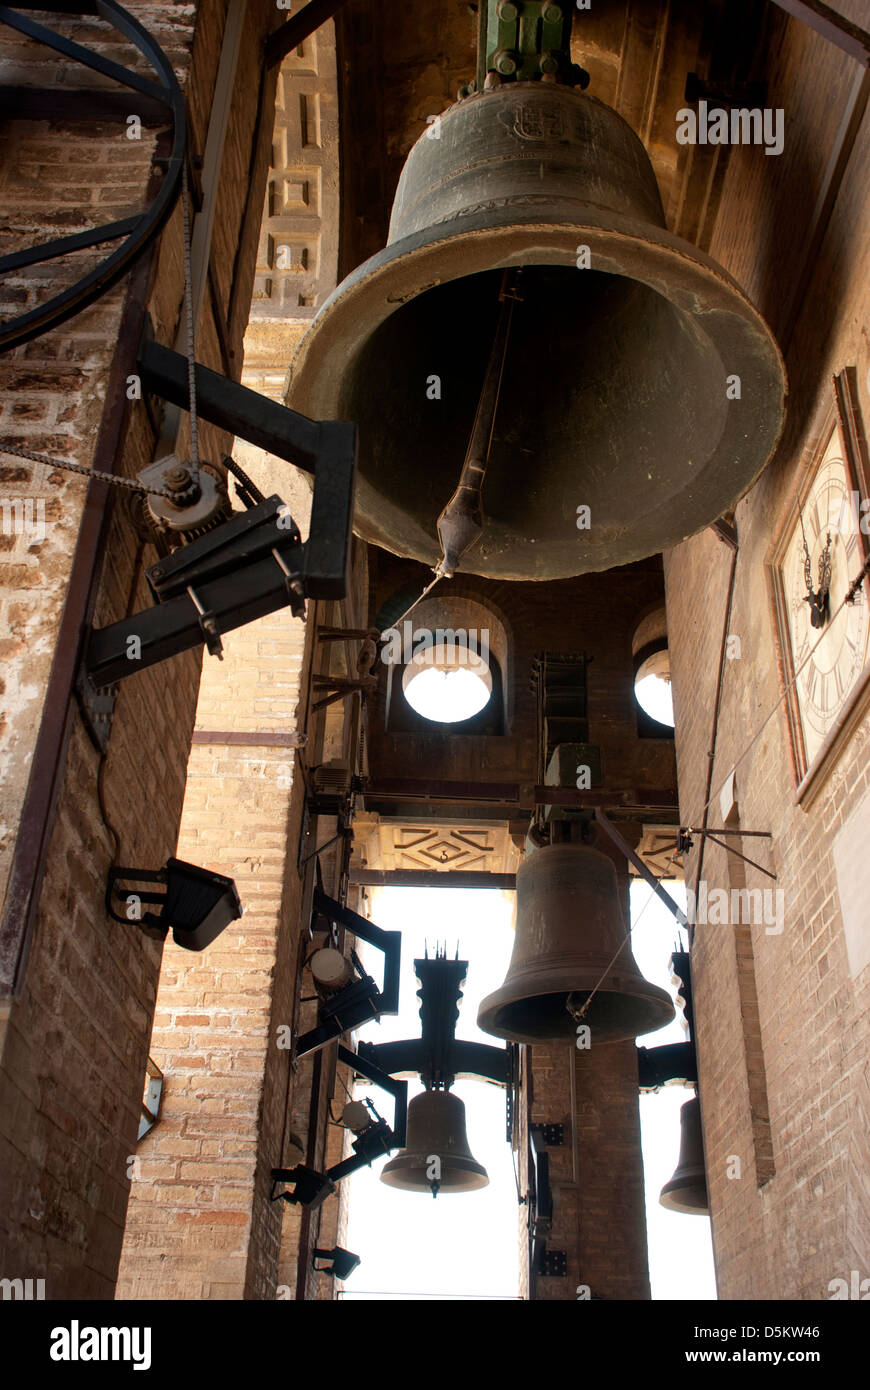 Bells of bell tower of Cathedral of Seville La Giralda, Southern Spain. Andalusia. - Stock Image